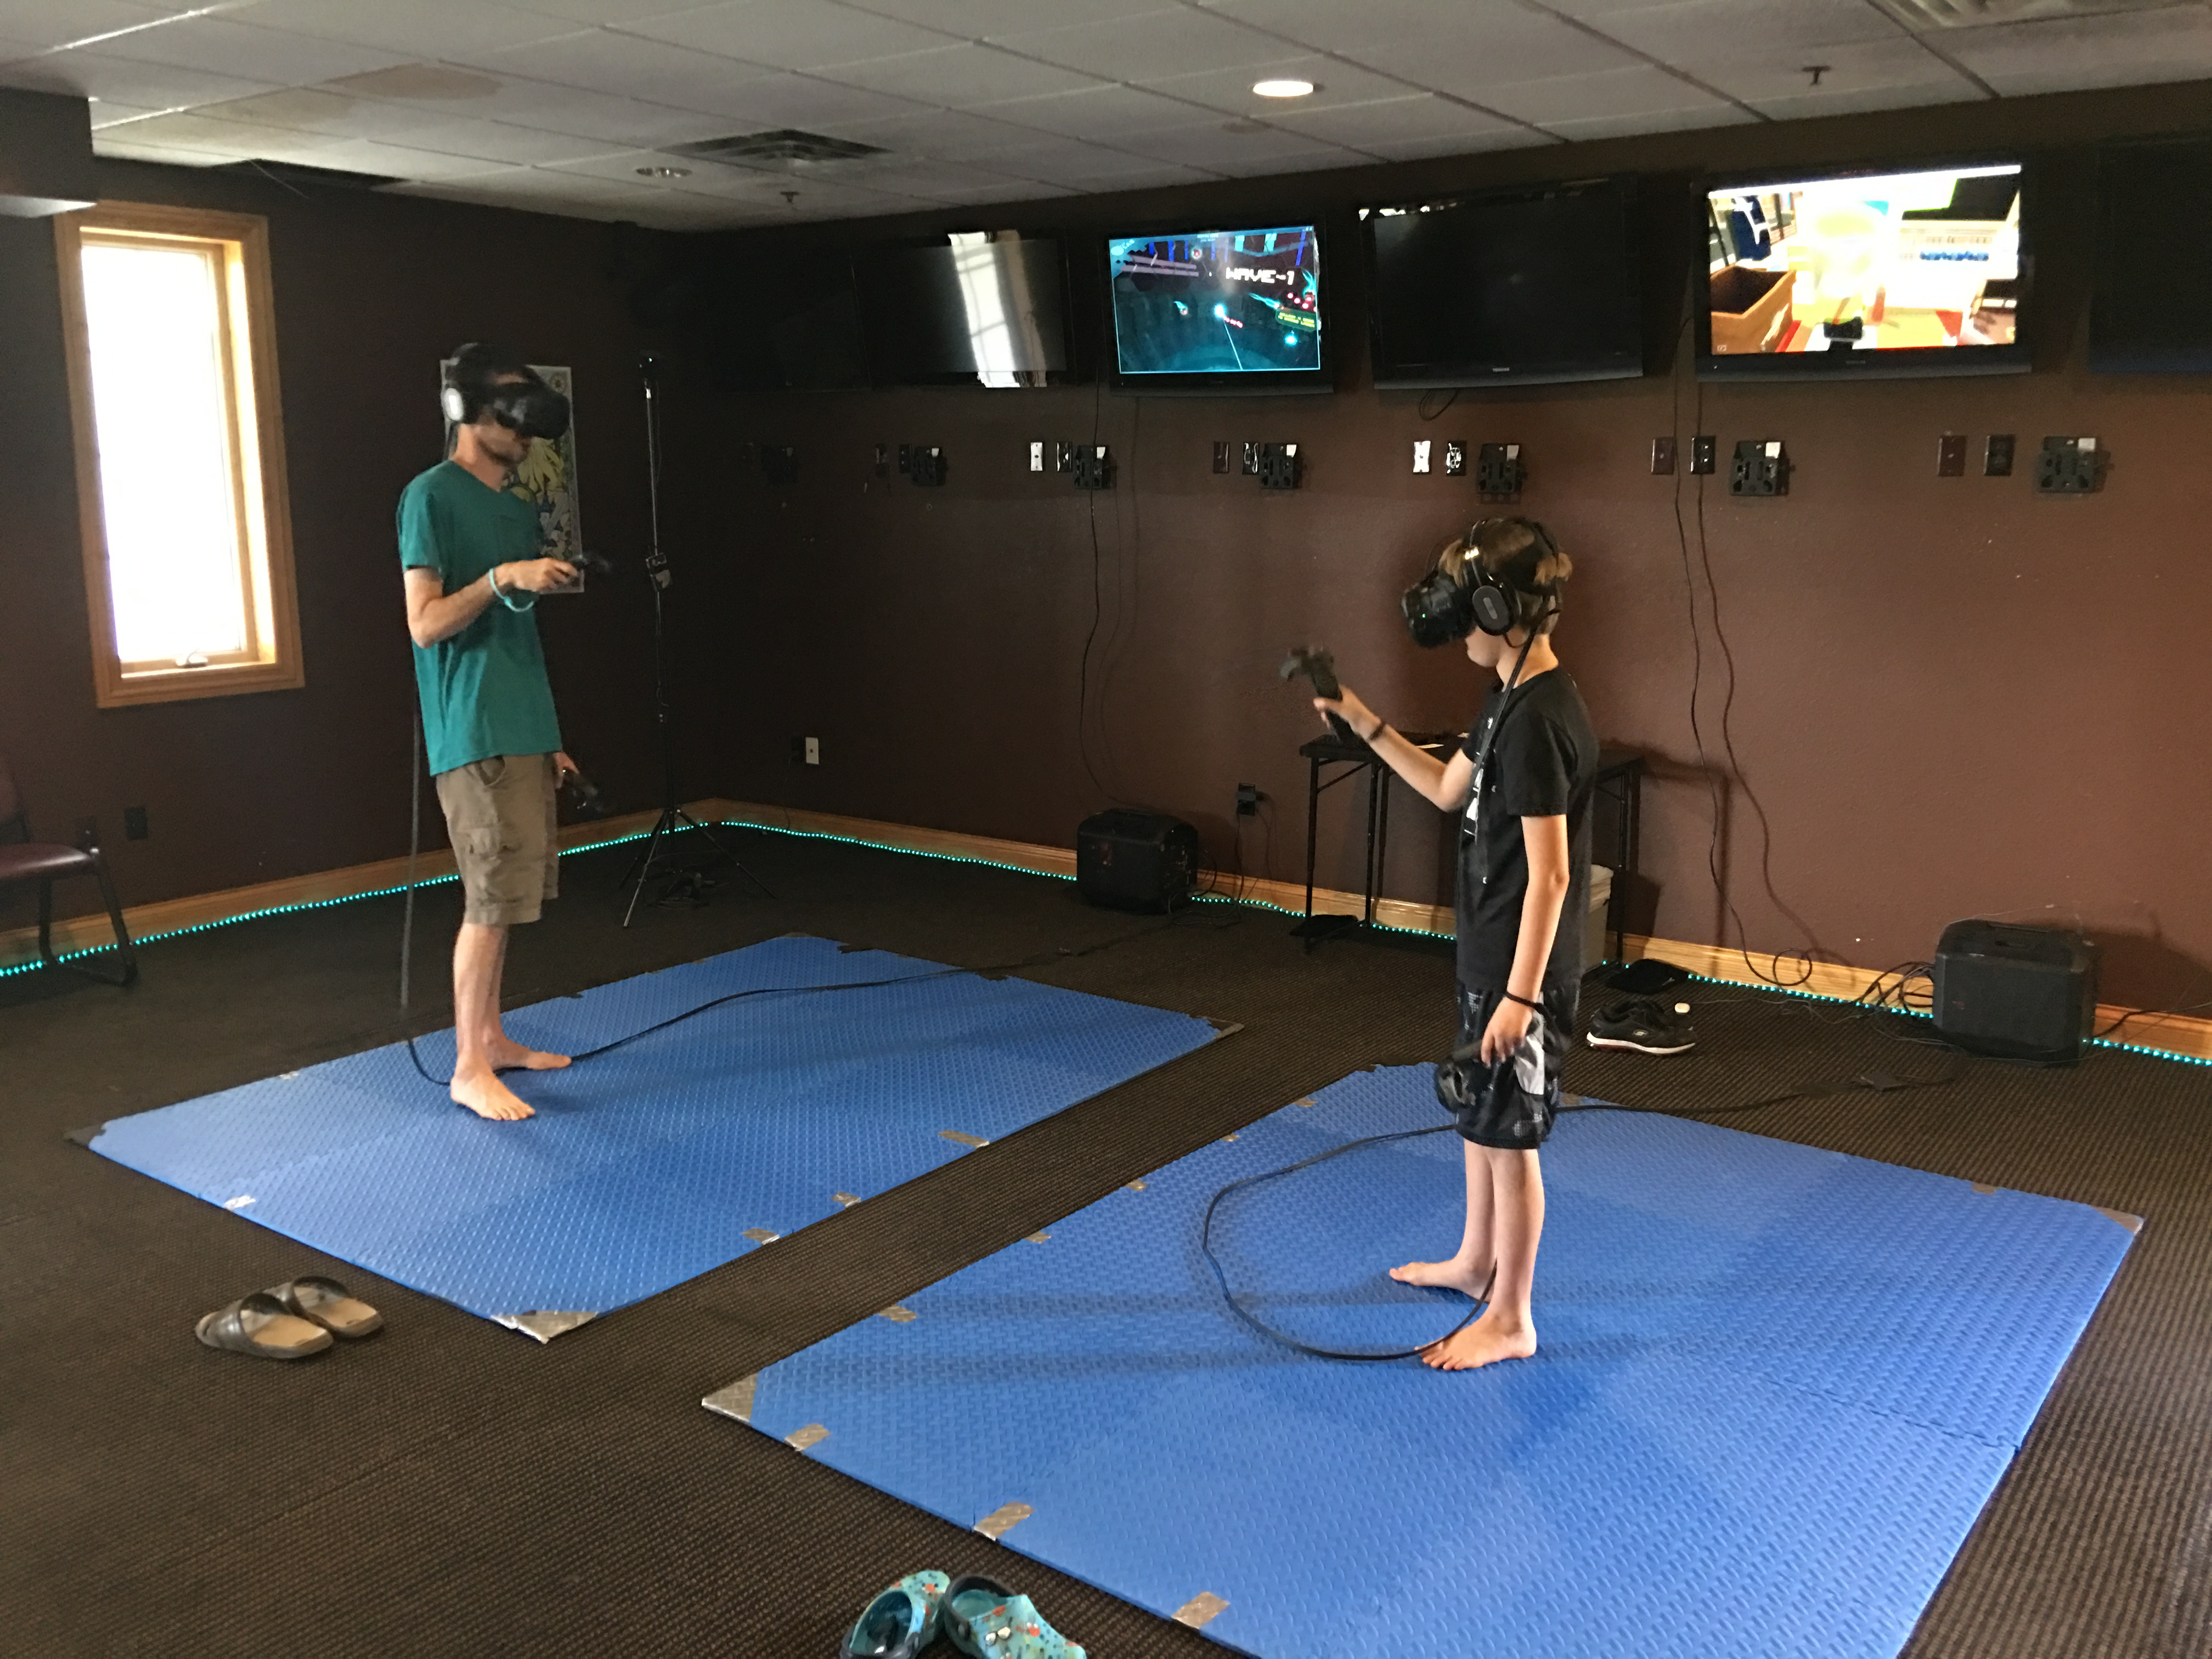 Room Scale Vr Games